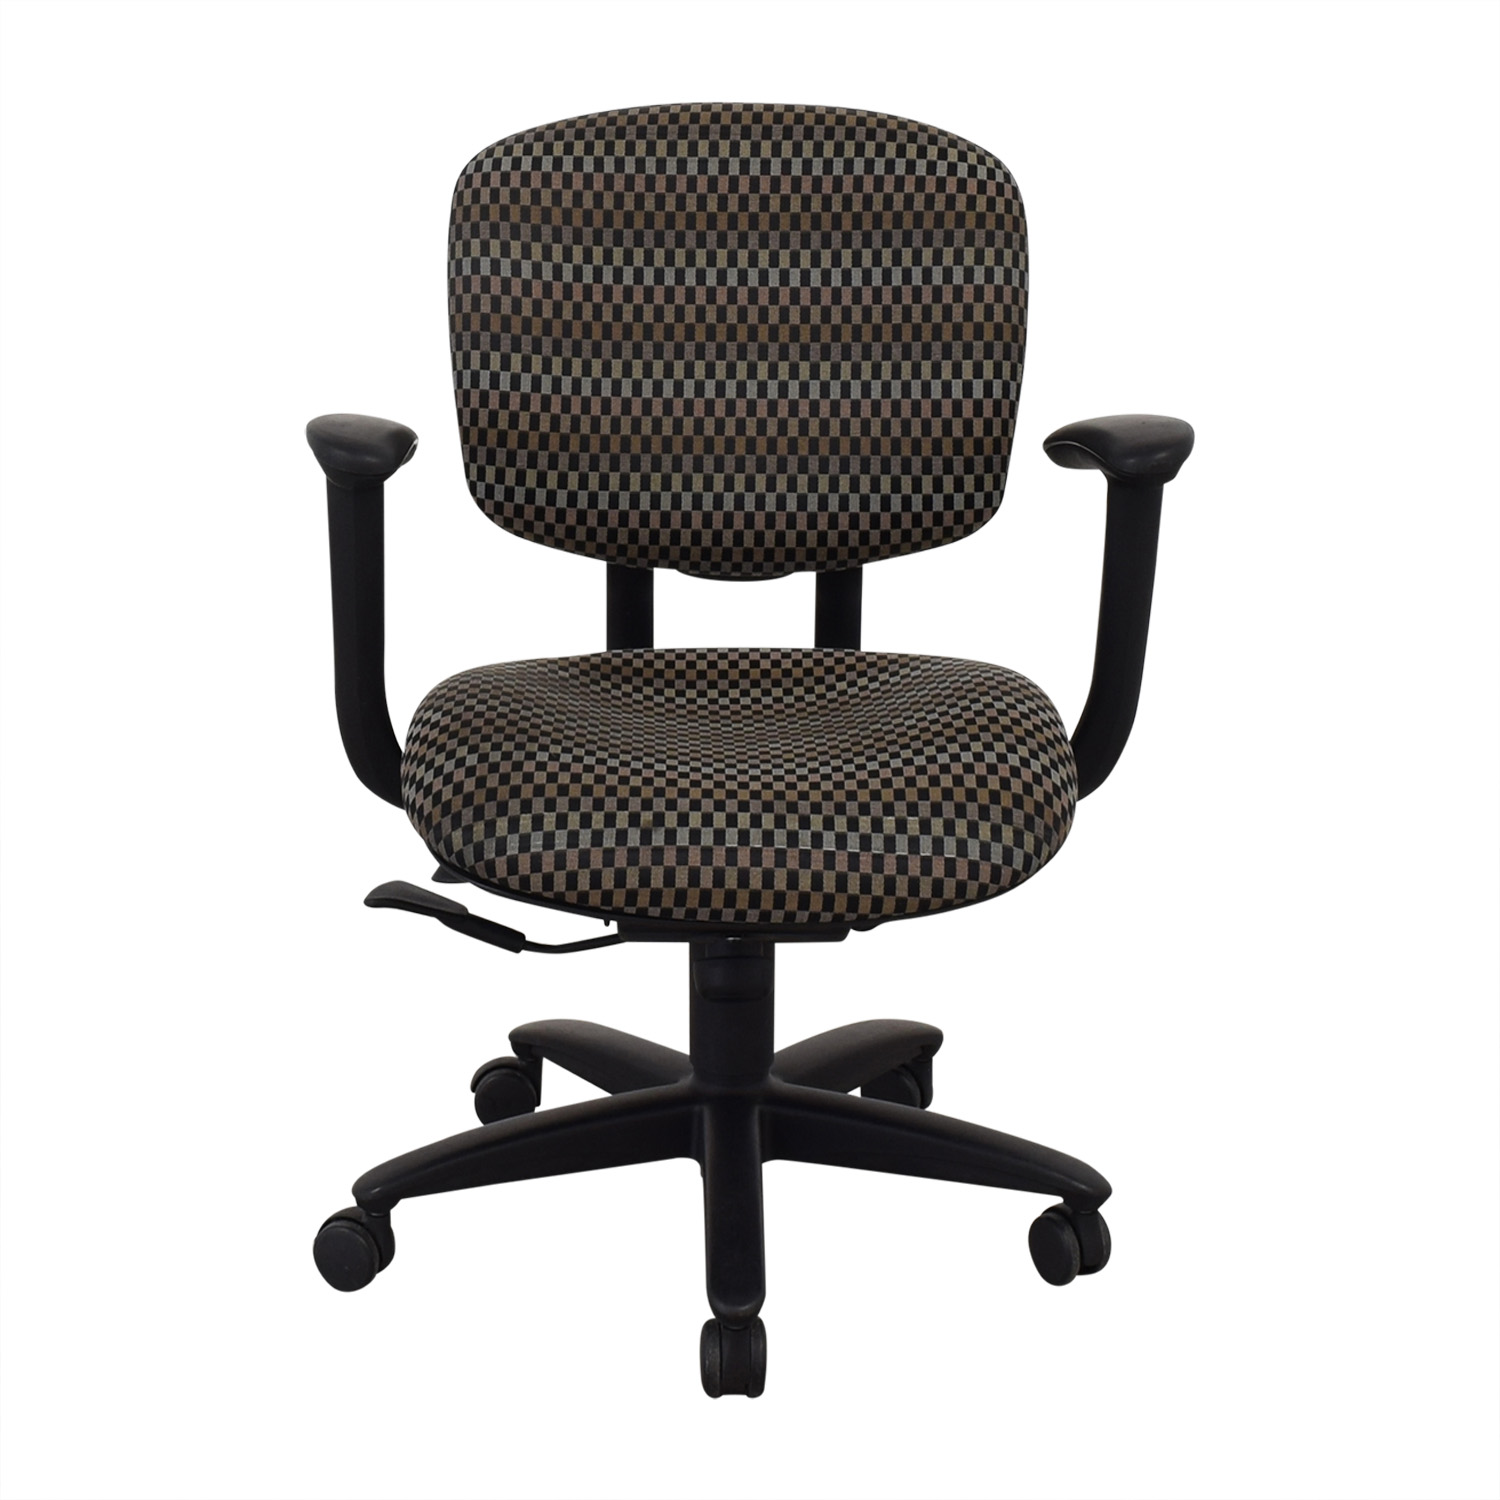 Haworth Haworth Improv Office Desk Chair dimensions